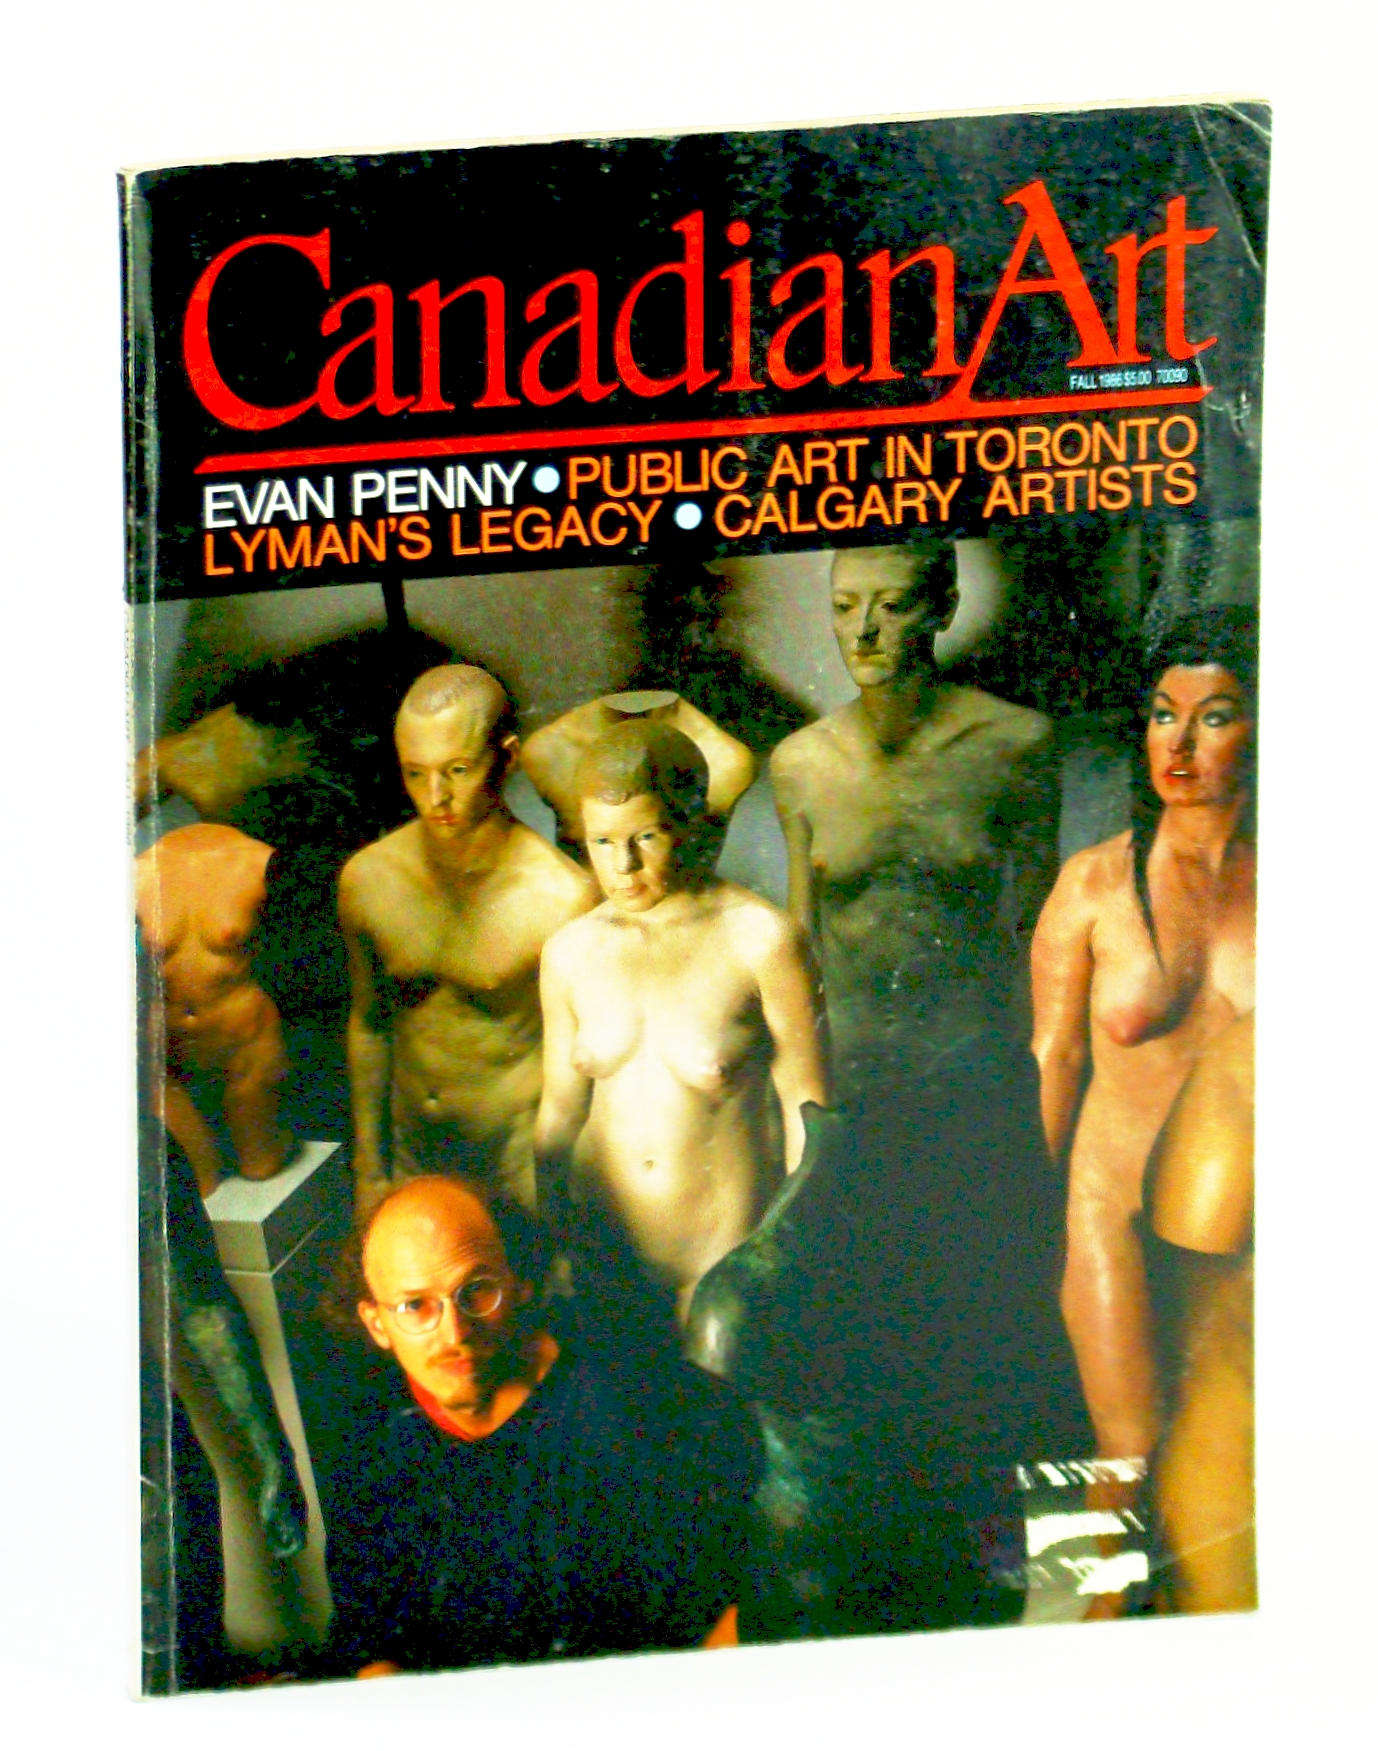 Image for Canadian Art (Magazine), Fall / September 1986, Volume 3, Number 3 - Evan Penny / John Lyman